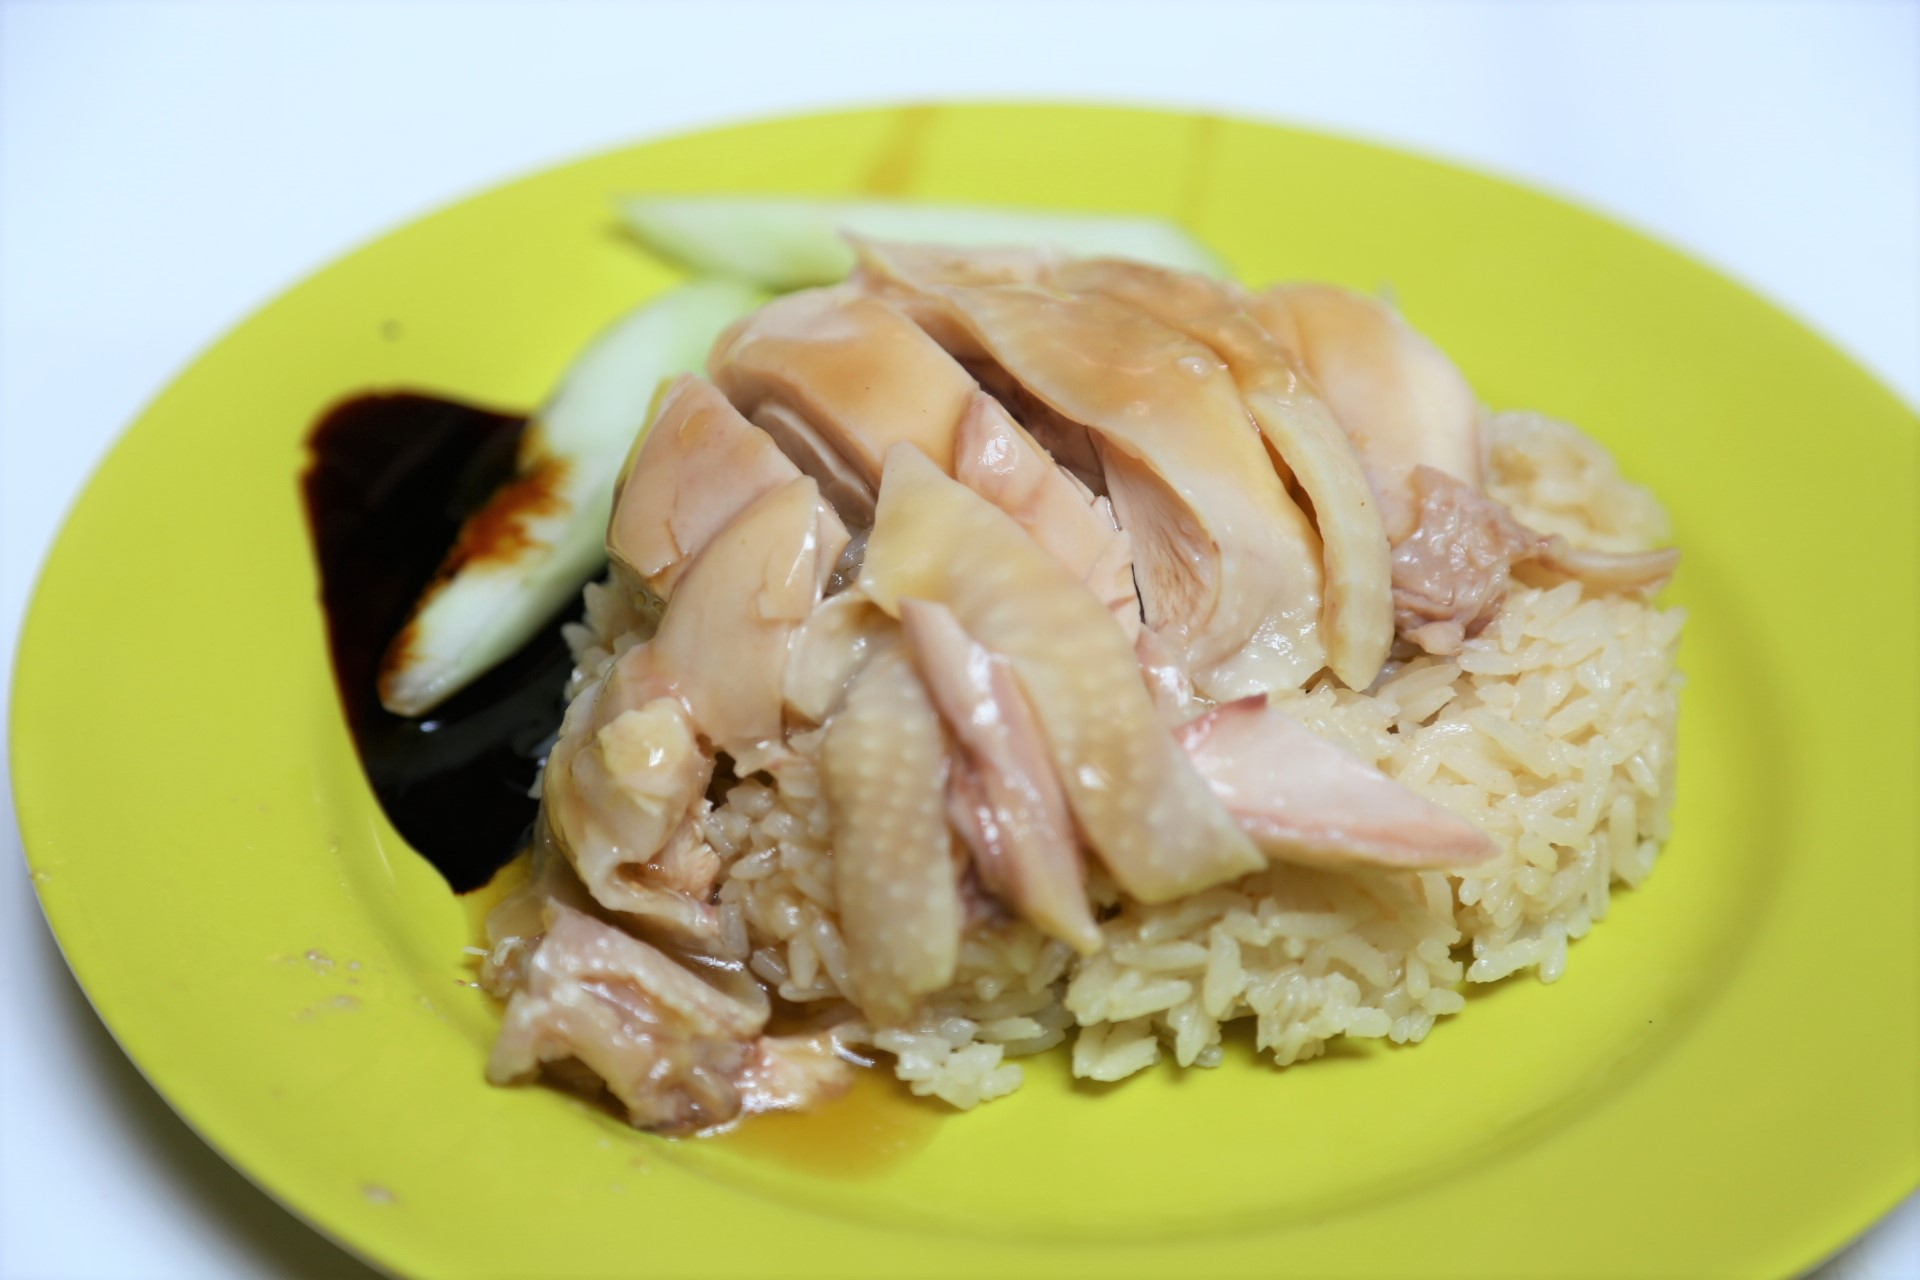 Tian Tian Hainanese Chicken Rice Singapore S Famed Chicken Rice Stall At Maxwell Food Centre With Michelin Bib Gourmand Danielfooddiary Com